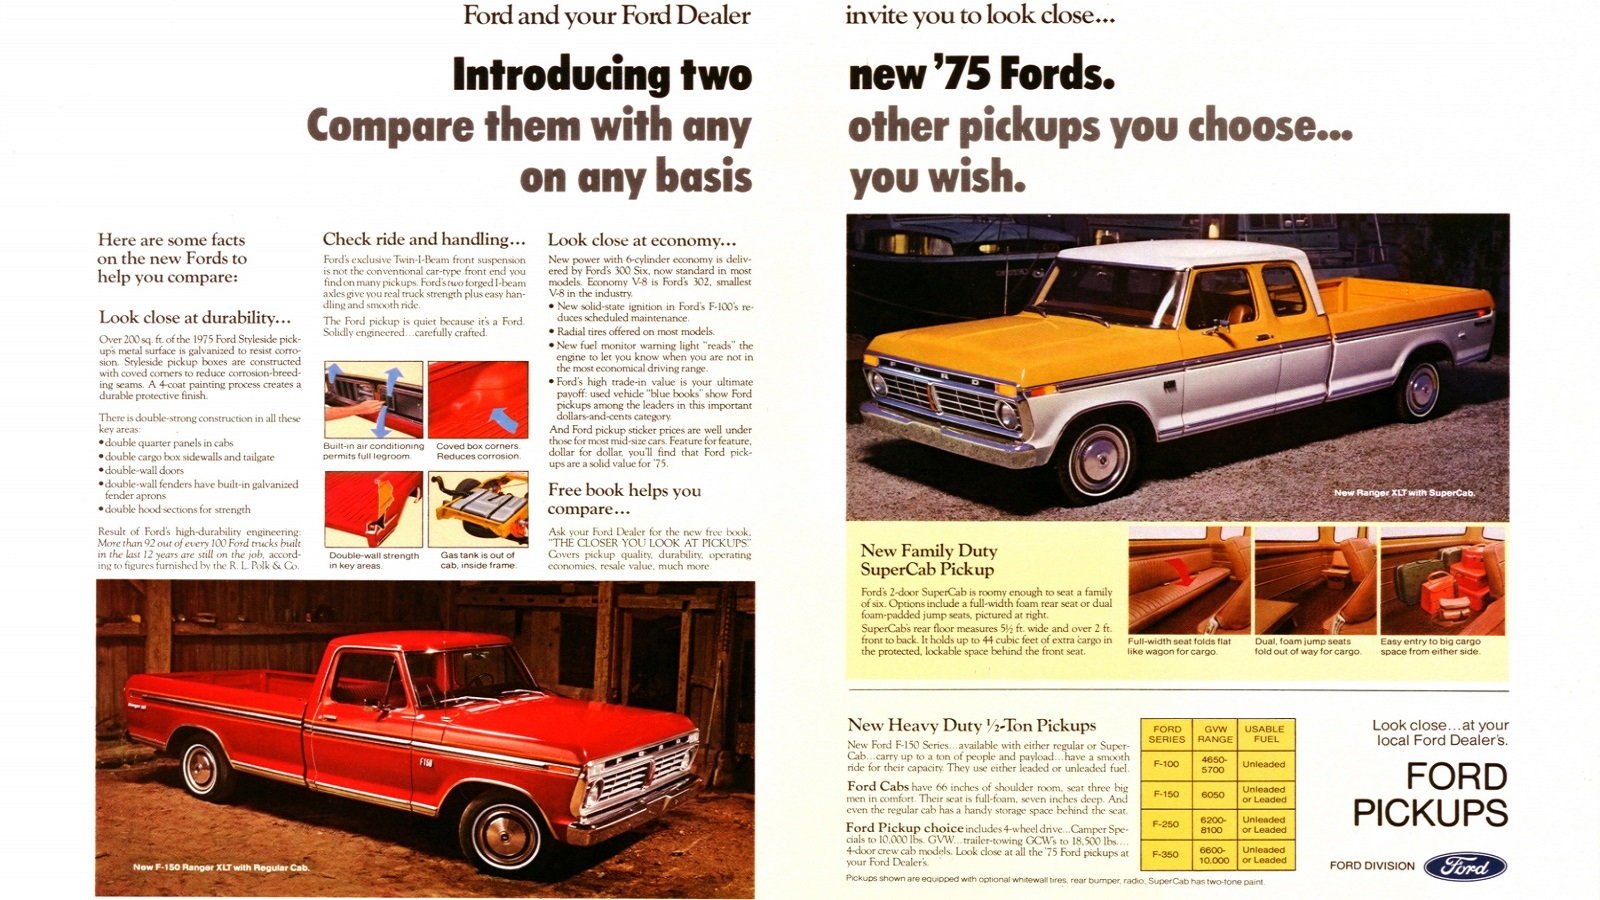 1975 Ford F-150 and SuperCab